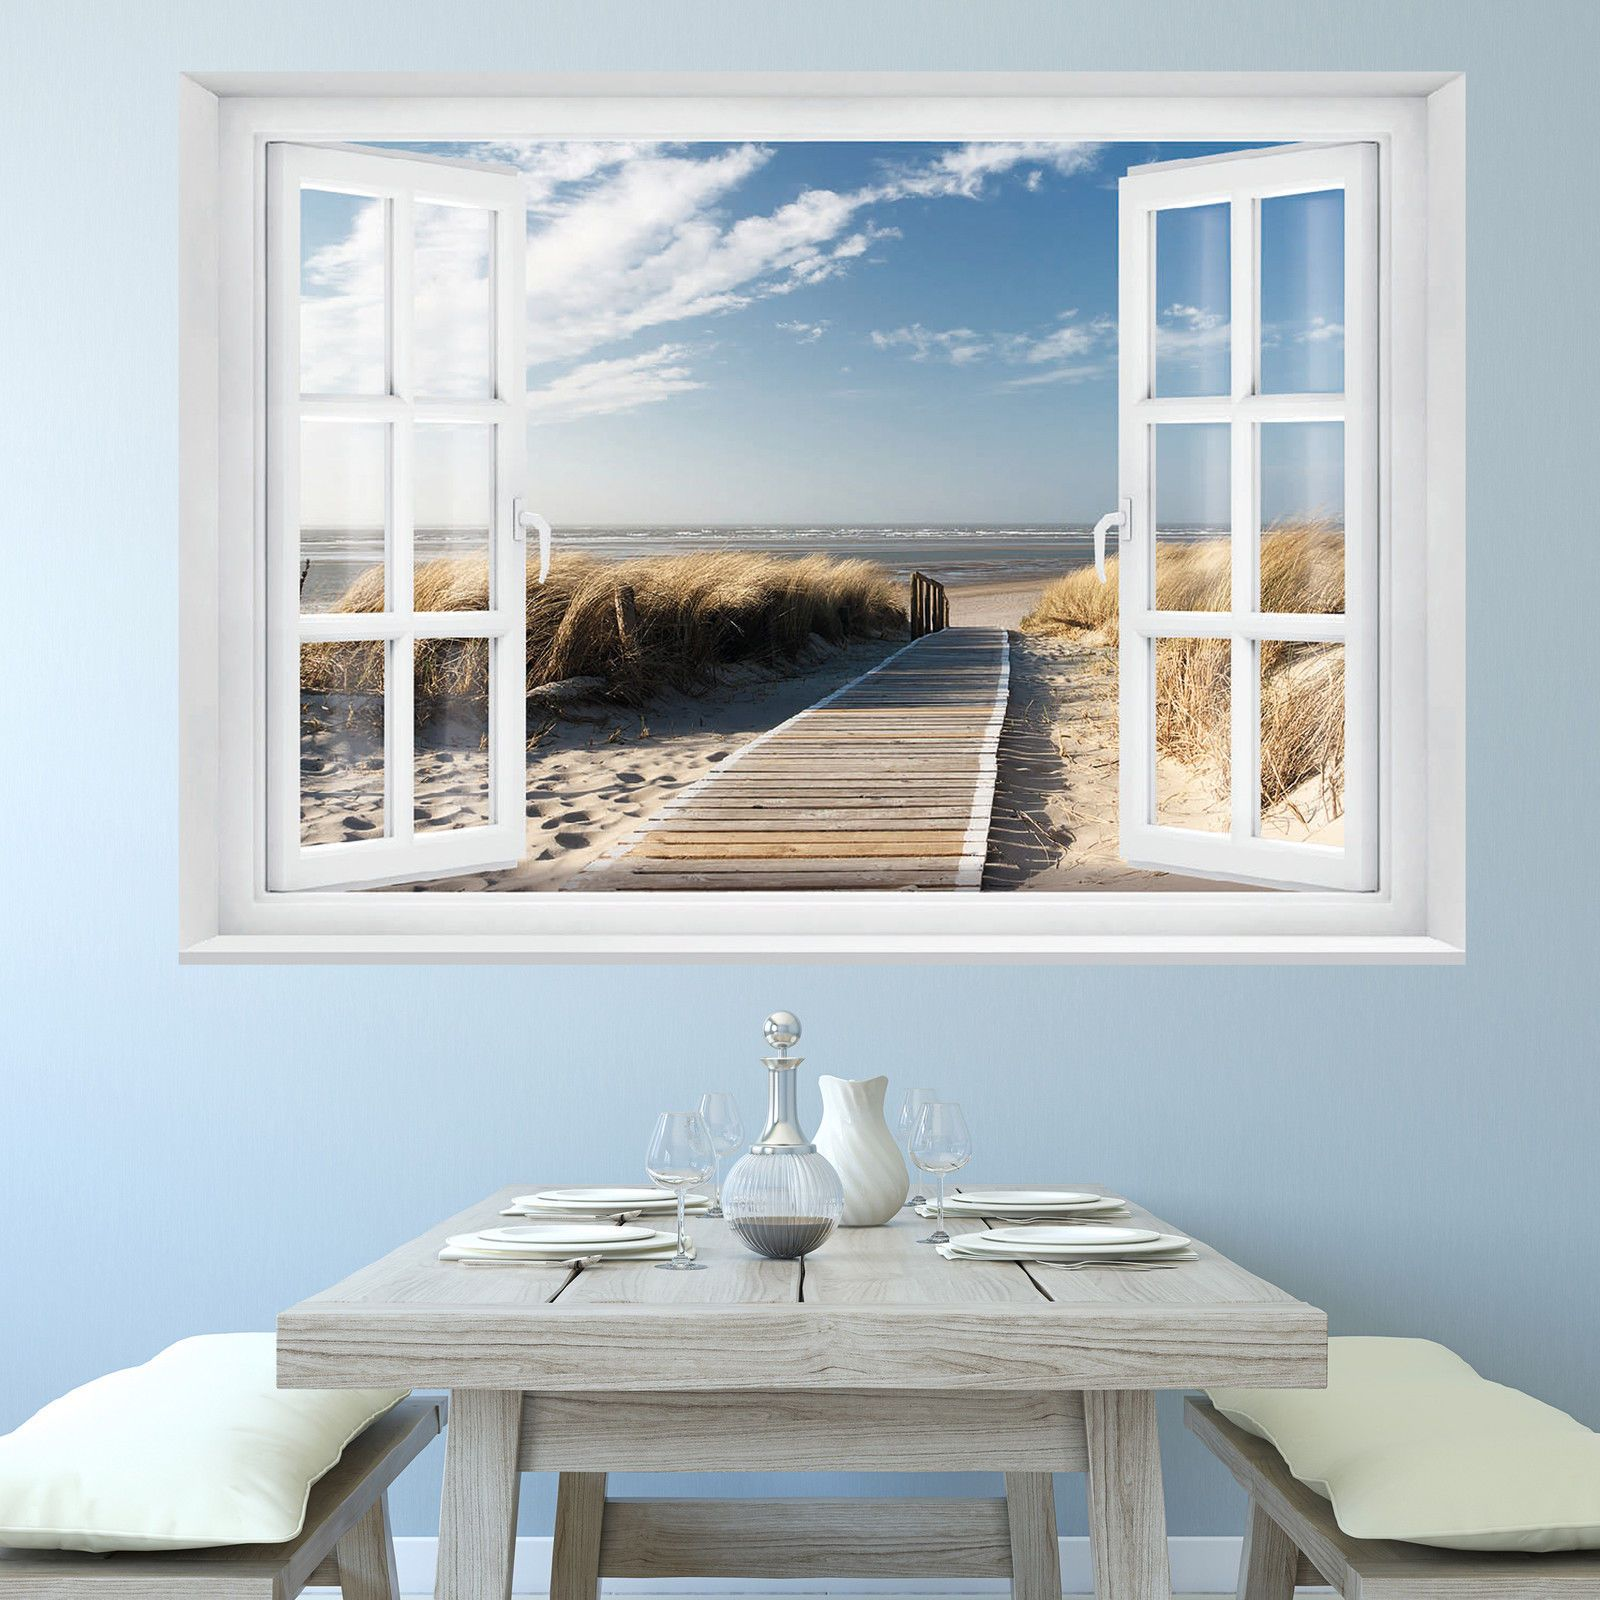 fototapete beach window 2t1 127cm x 183cm meer strand d nen ocean way tapete in heimwerker. Black Bedroom Furniture Sets. Home Design Ideas